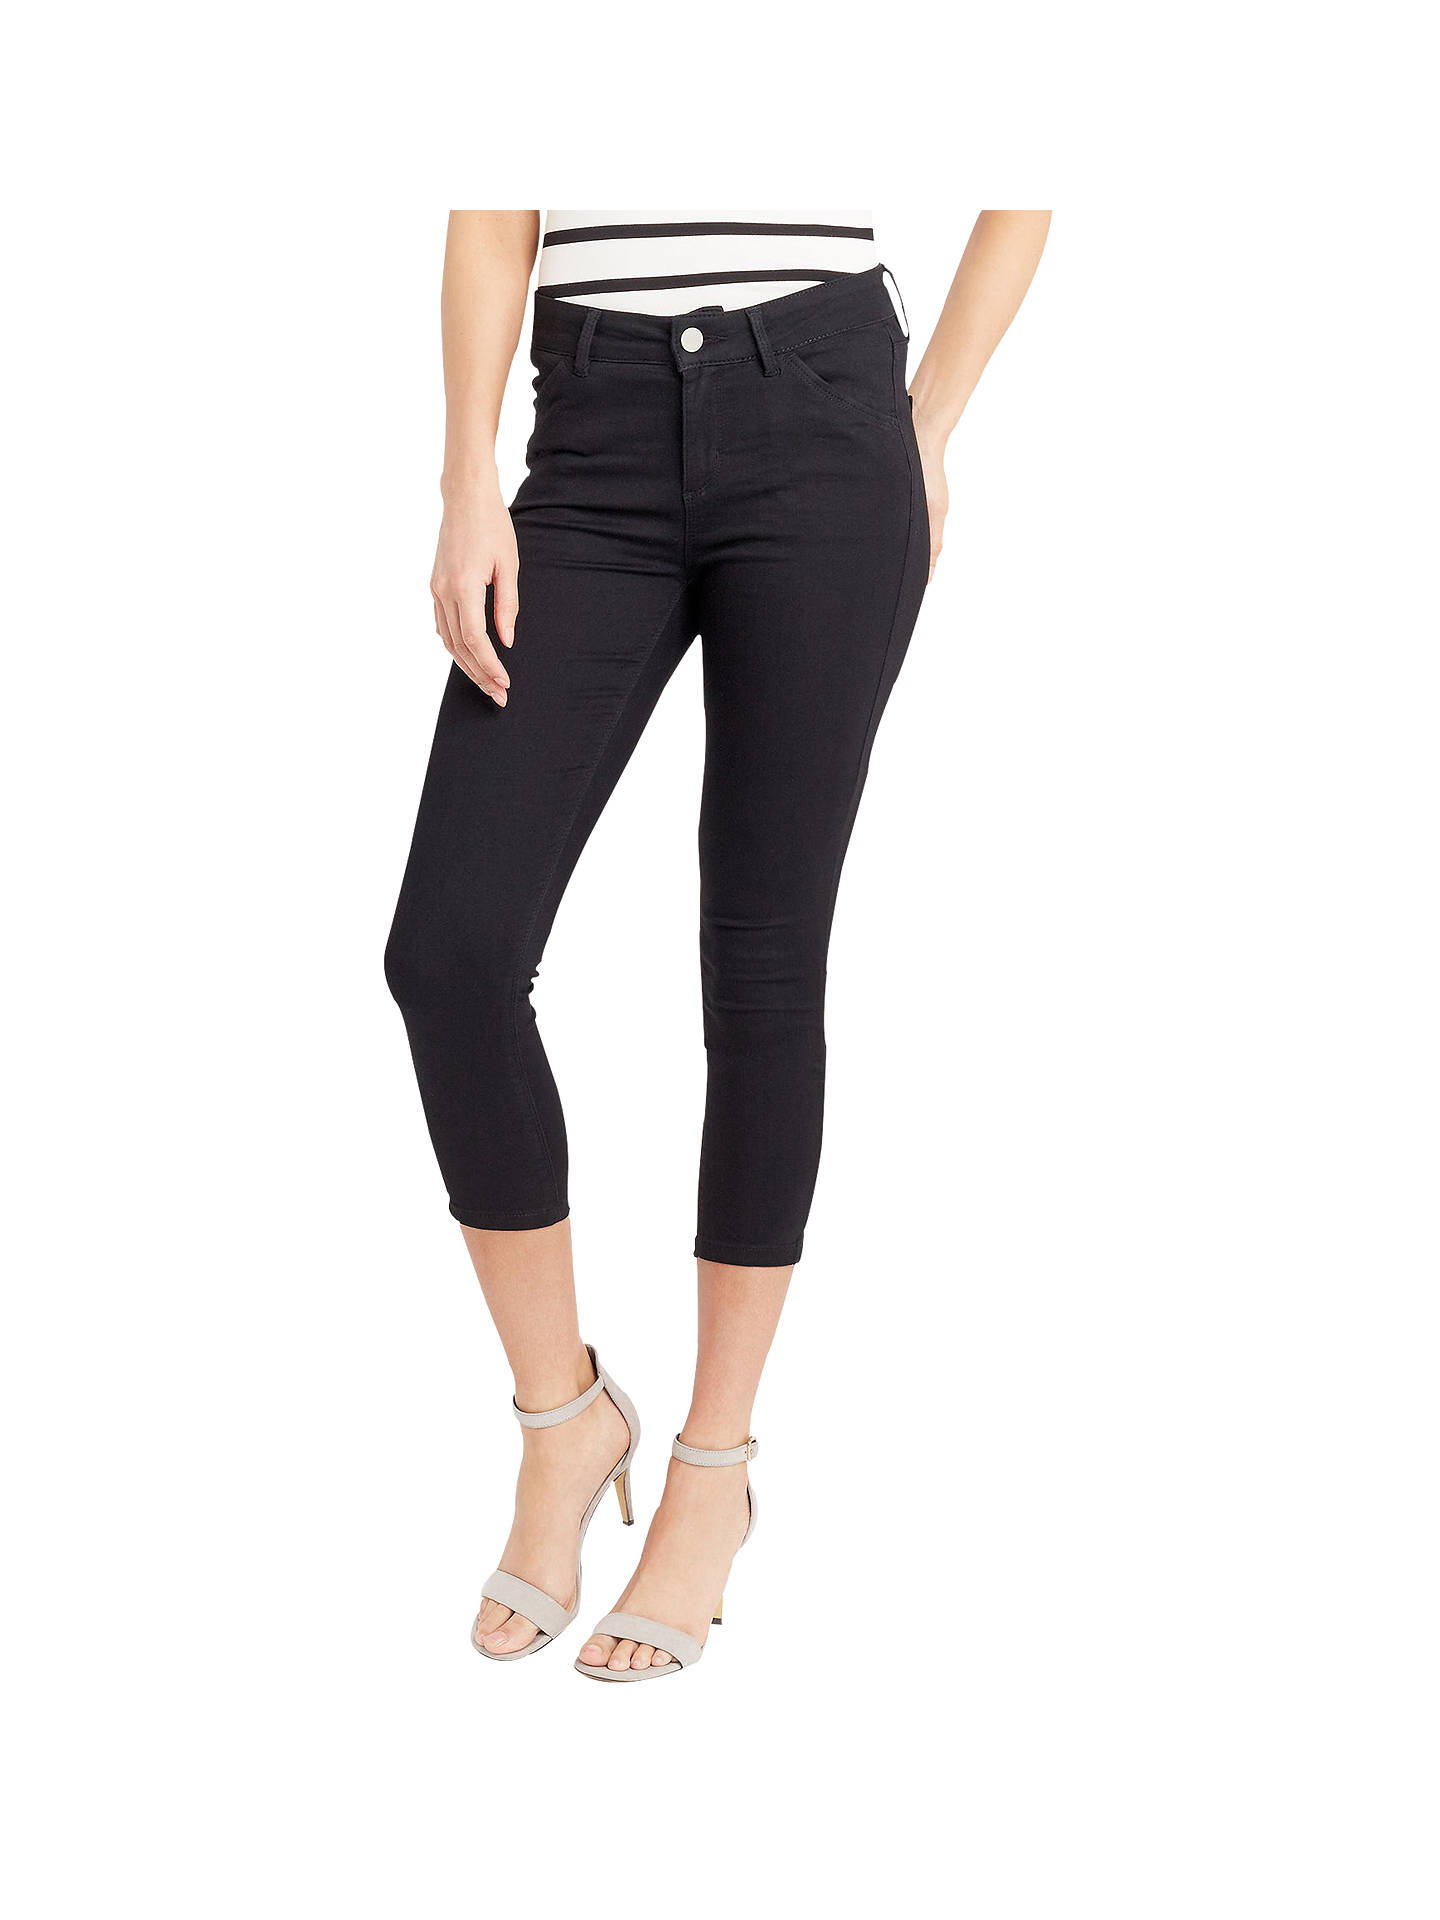 39ff7c2d177a Buy Oasis High Waisted Grace Capri Jeans, Black, 8 Online at johnlewis.com  ...